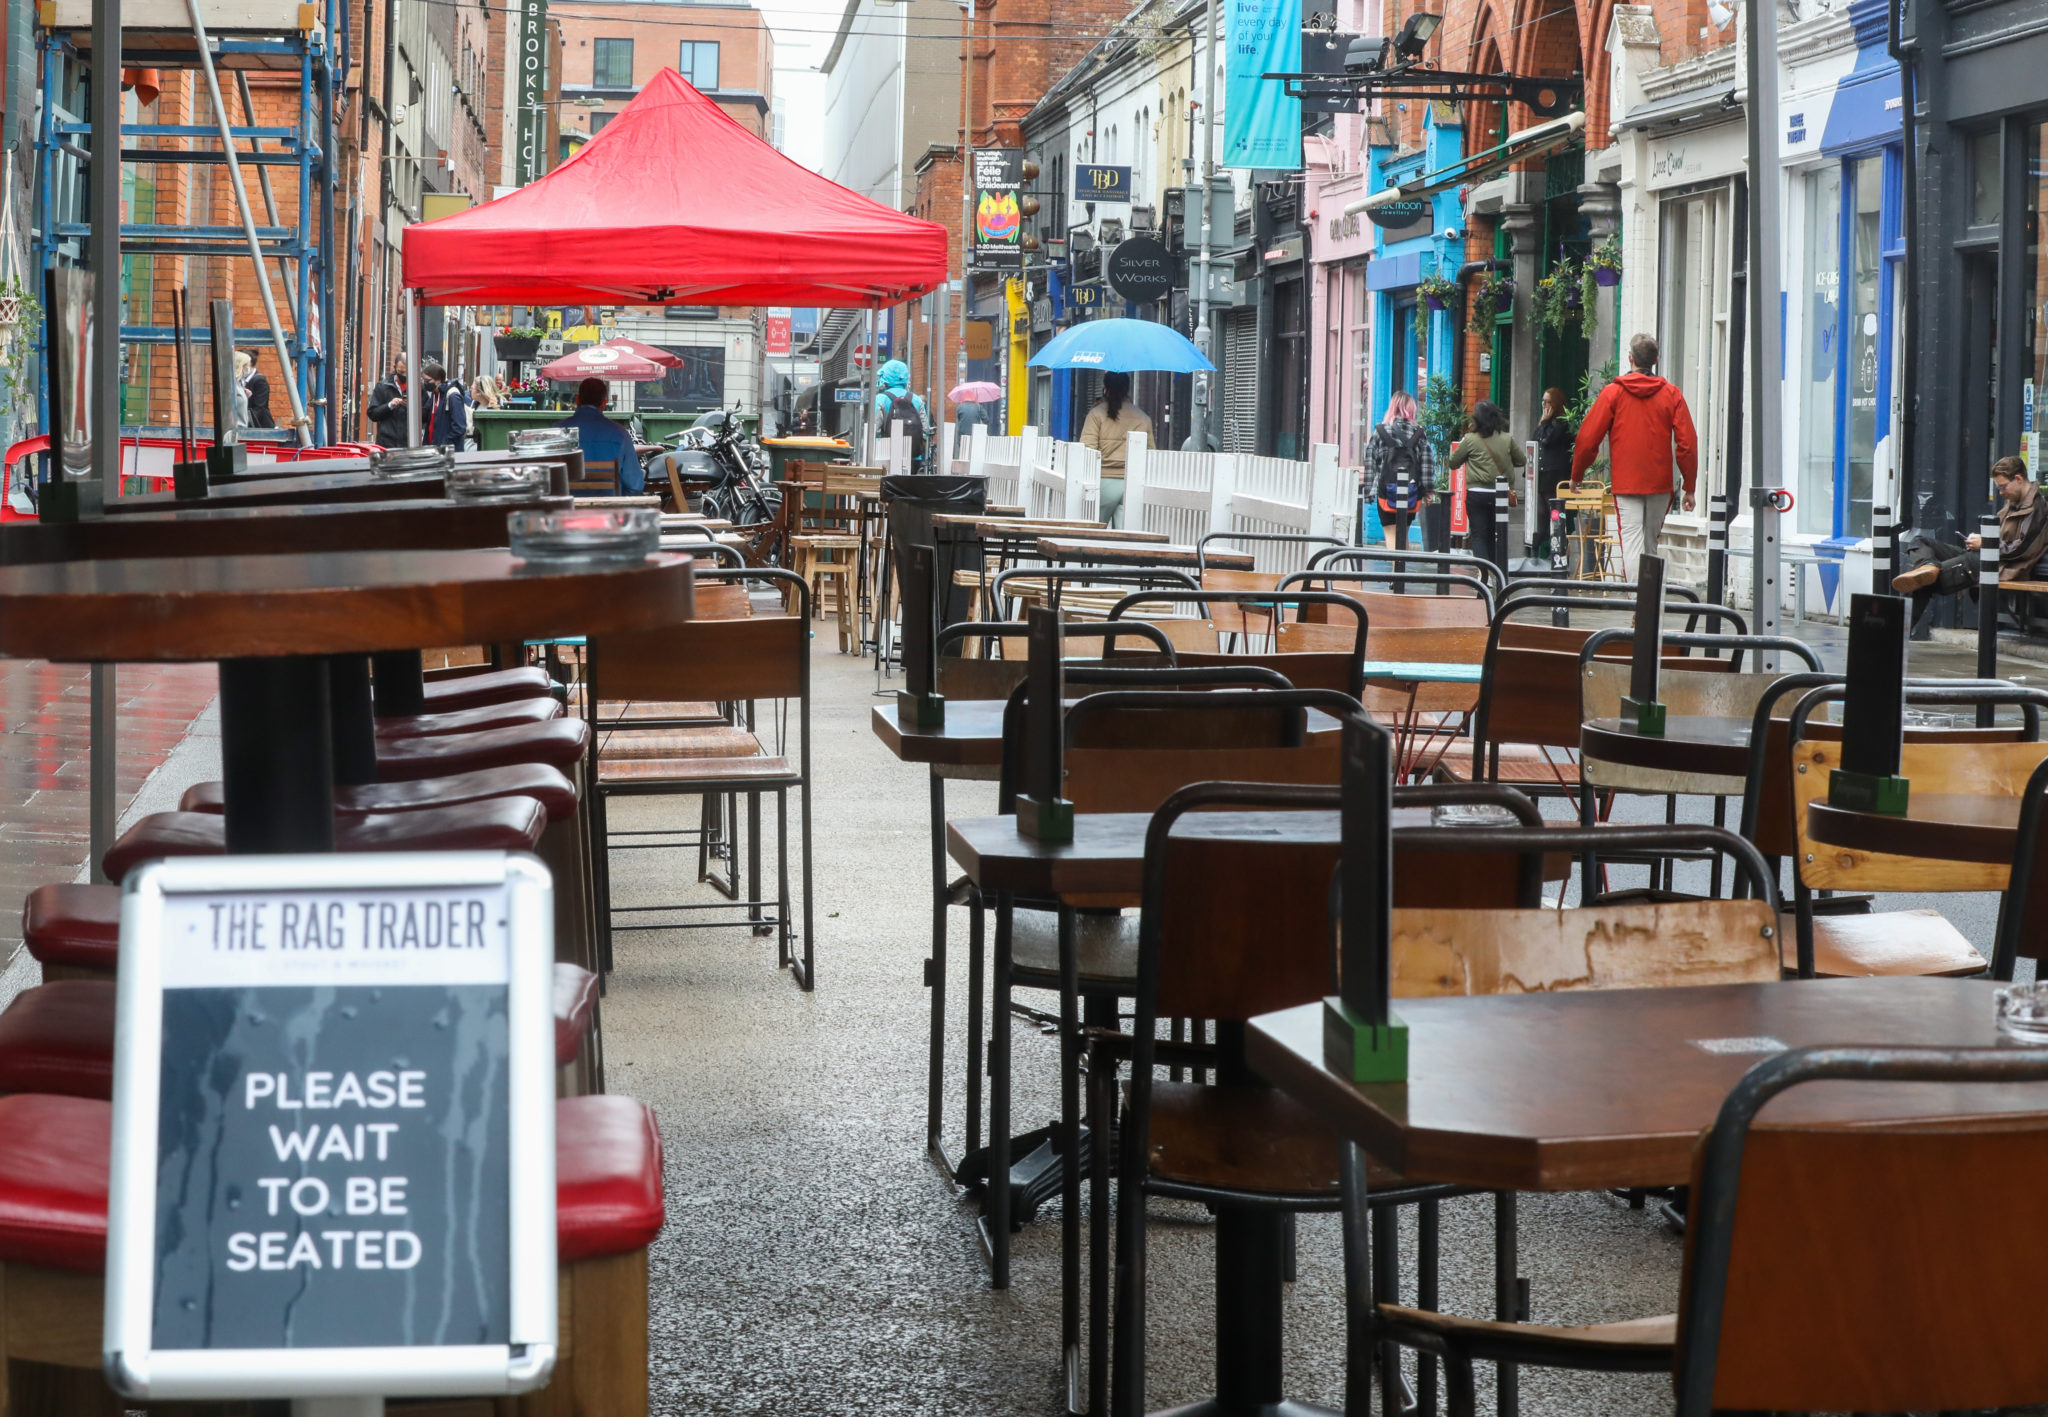 The empty outdoor dining area at The Rag Trader on Drury Street in Dublin